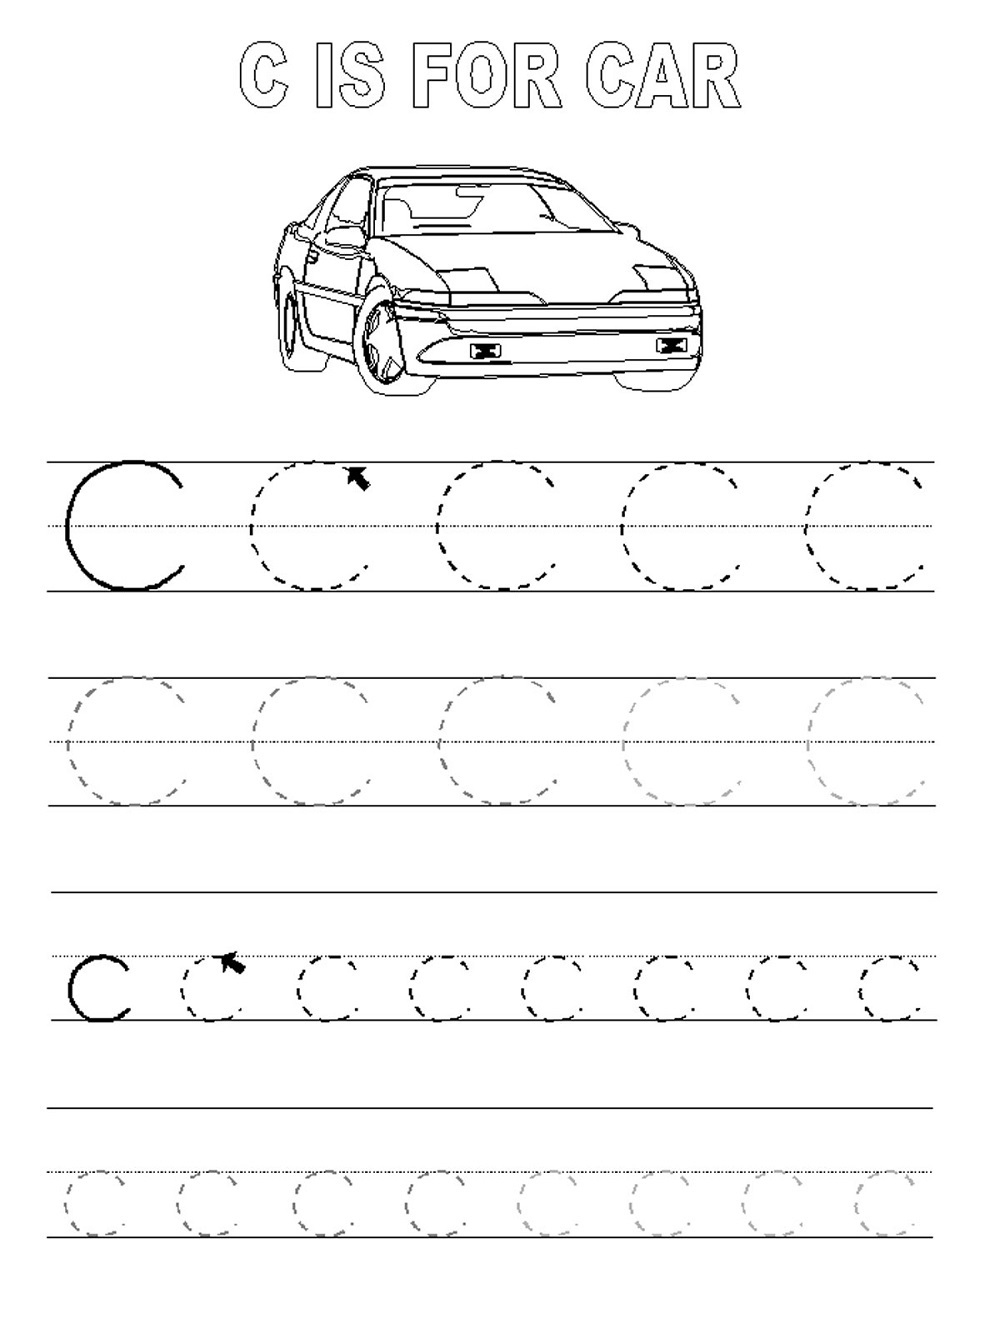 Abc Traceable Worksheets For Kids Activity | Kiddo Shelter | Traceable Abc Printable Worksheets